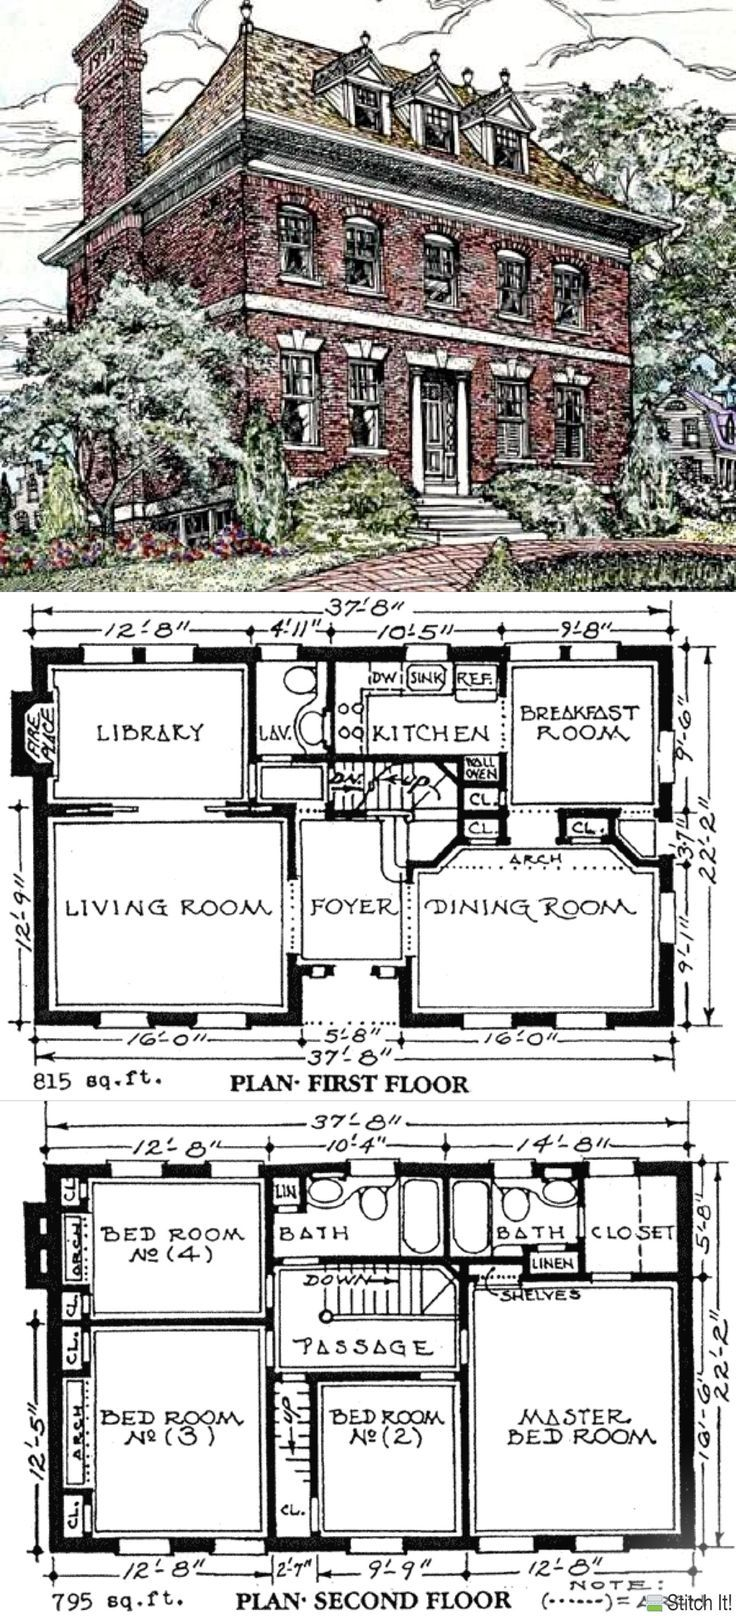 Extend the kitchen and have a roof top garden (ove…